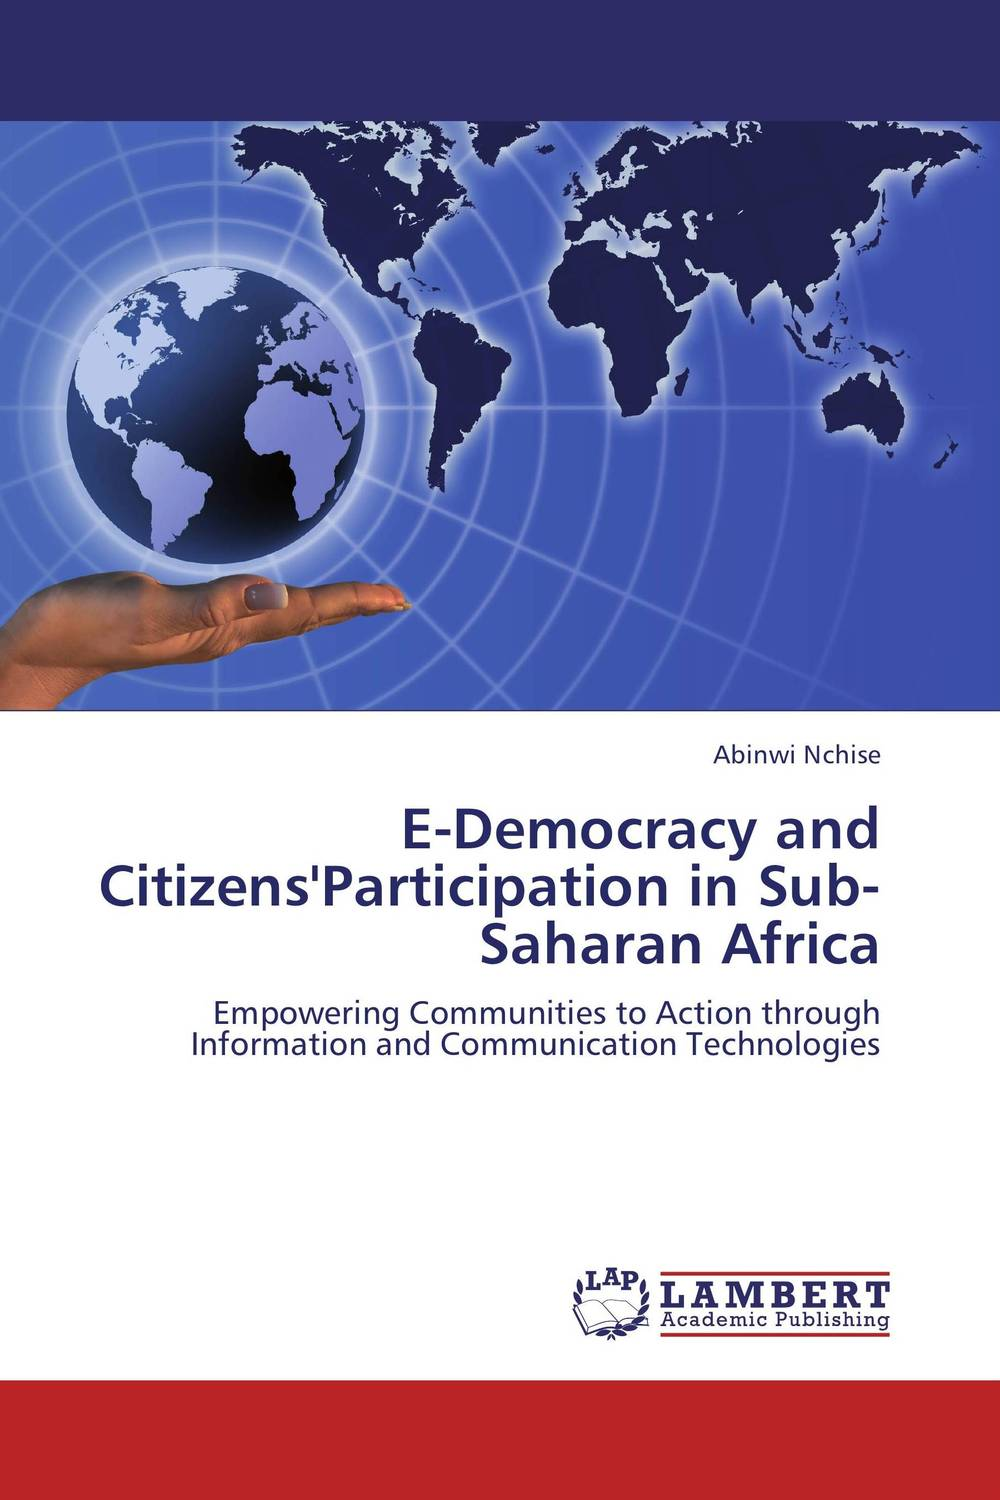 E-Democracy and Citizens'Participation in Sub-Saharan Africa democracy in america nce